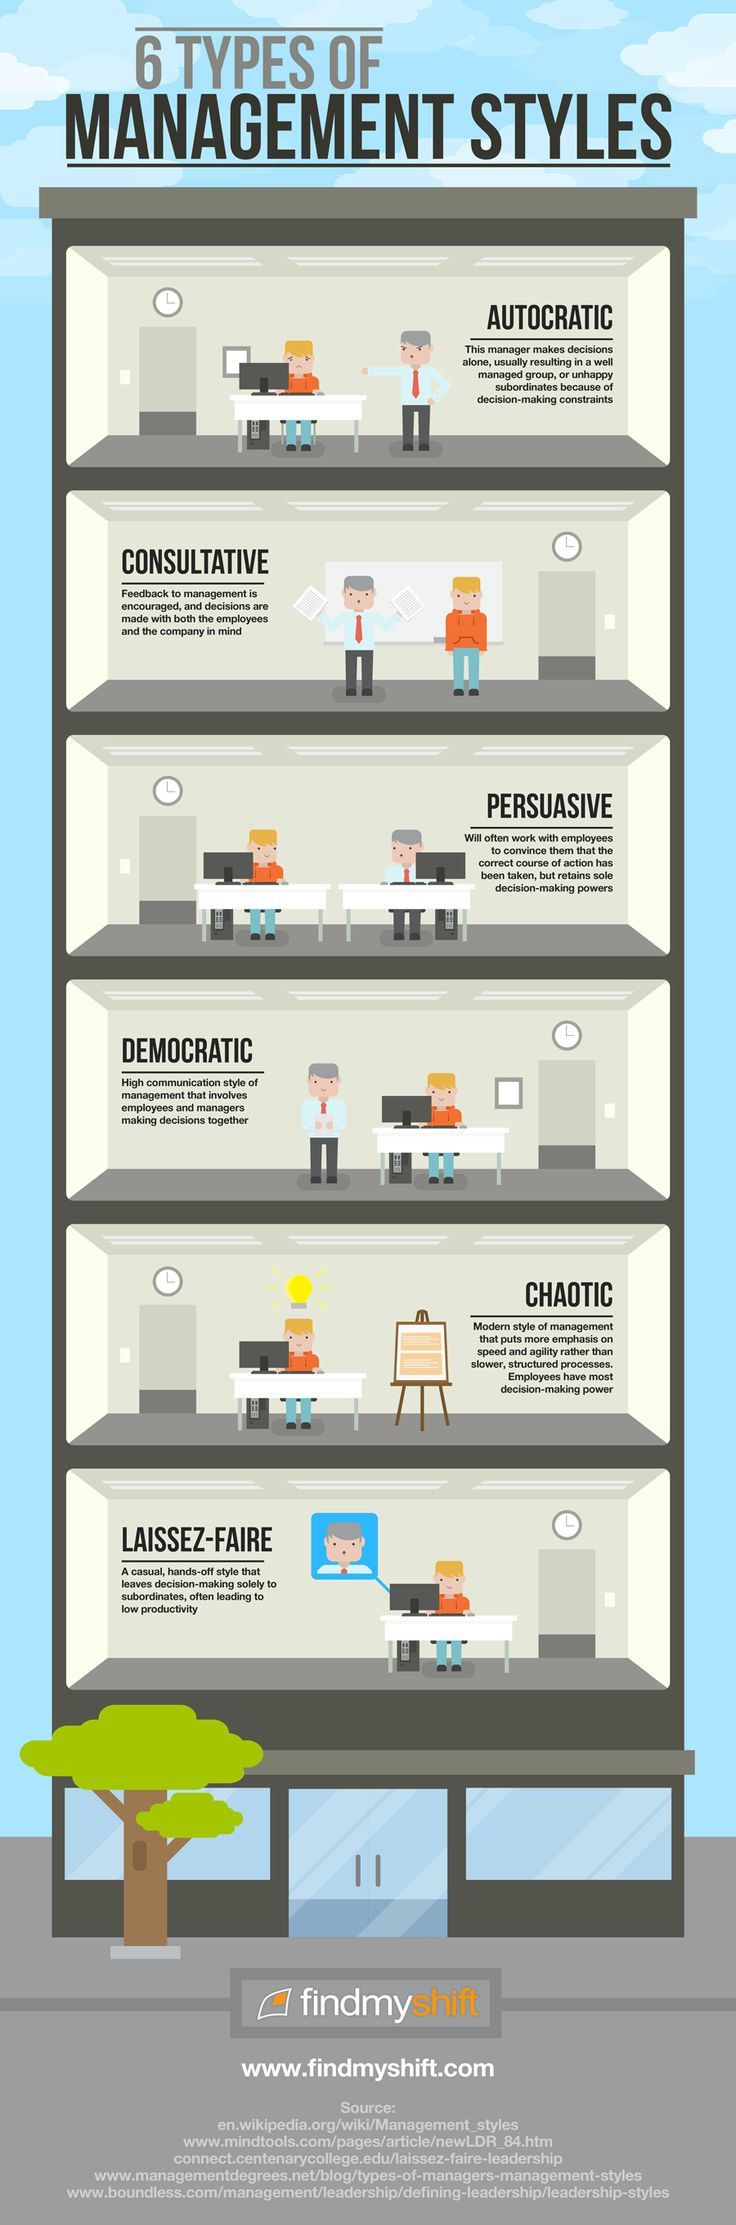 Infographic: 6 Types of Management Styles #infographic